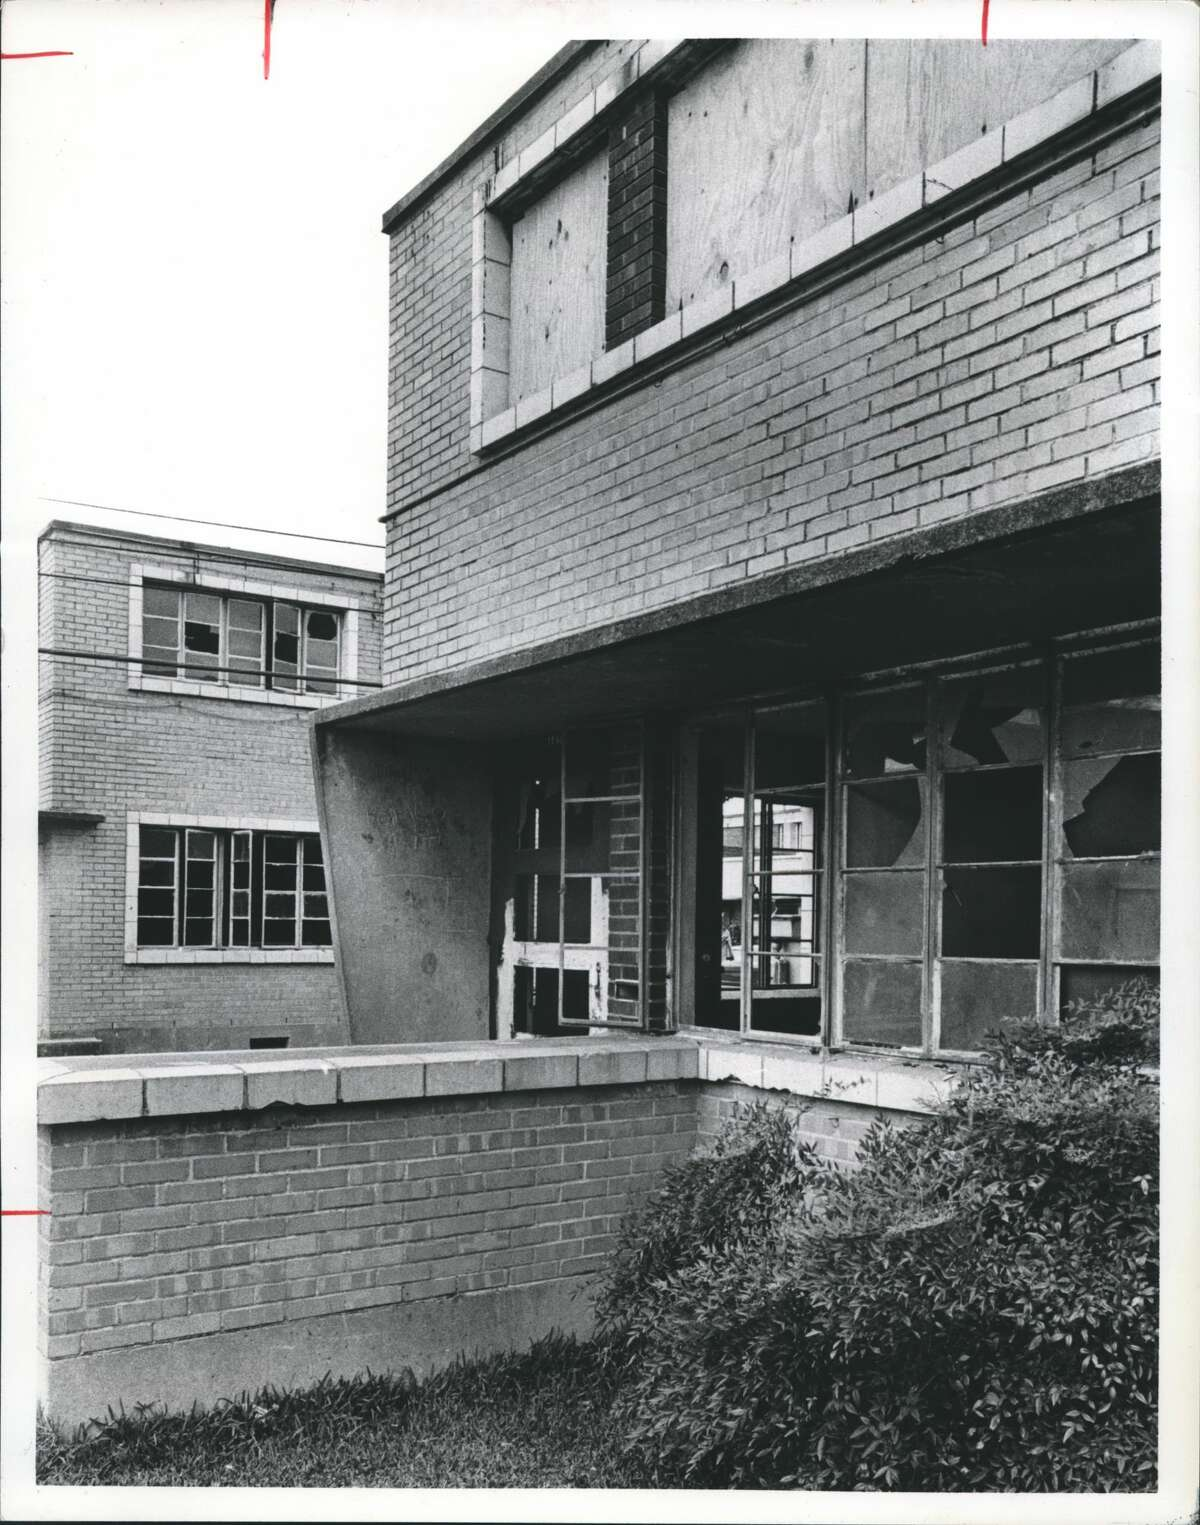 1978 - Vandalism, broken windows and problems have plagued the Allen Parkway Village development almost from the beginning. This photograph shows the problem with rundown apartments.